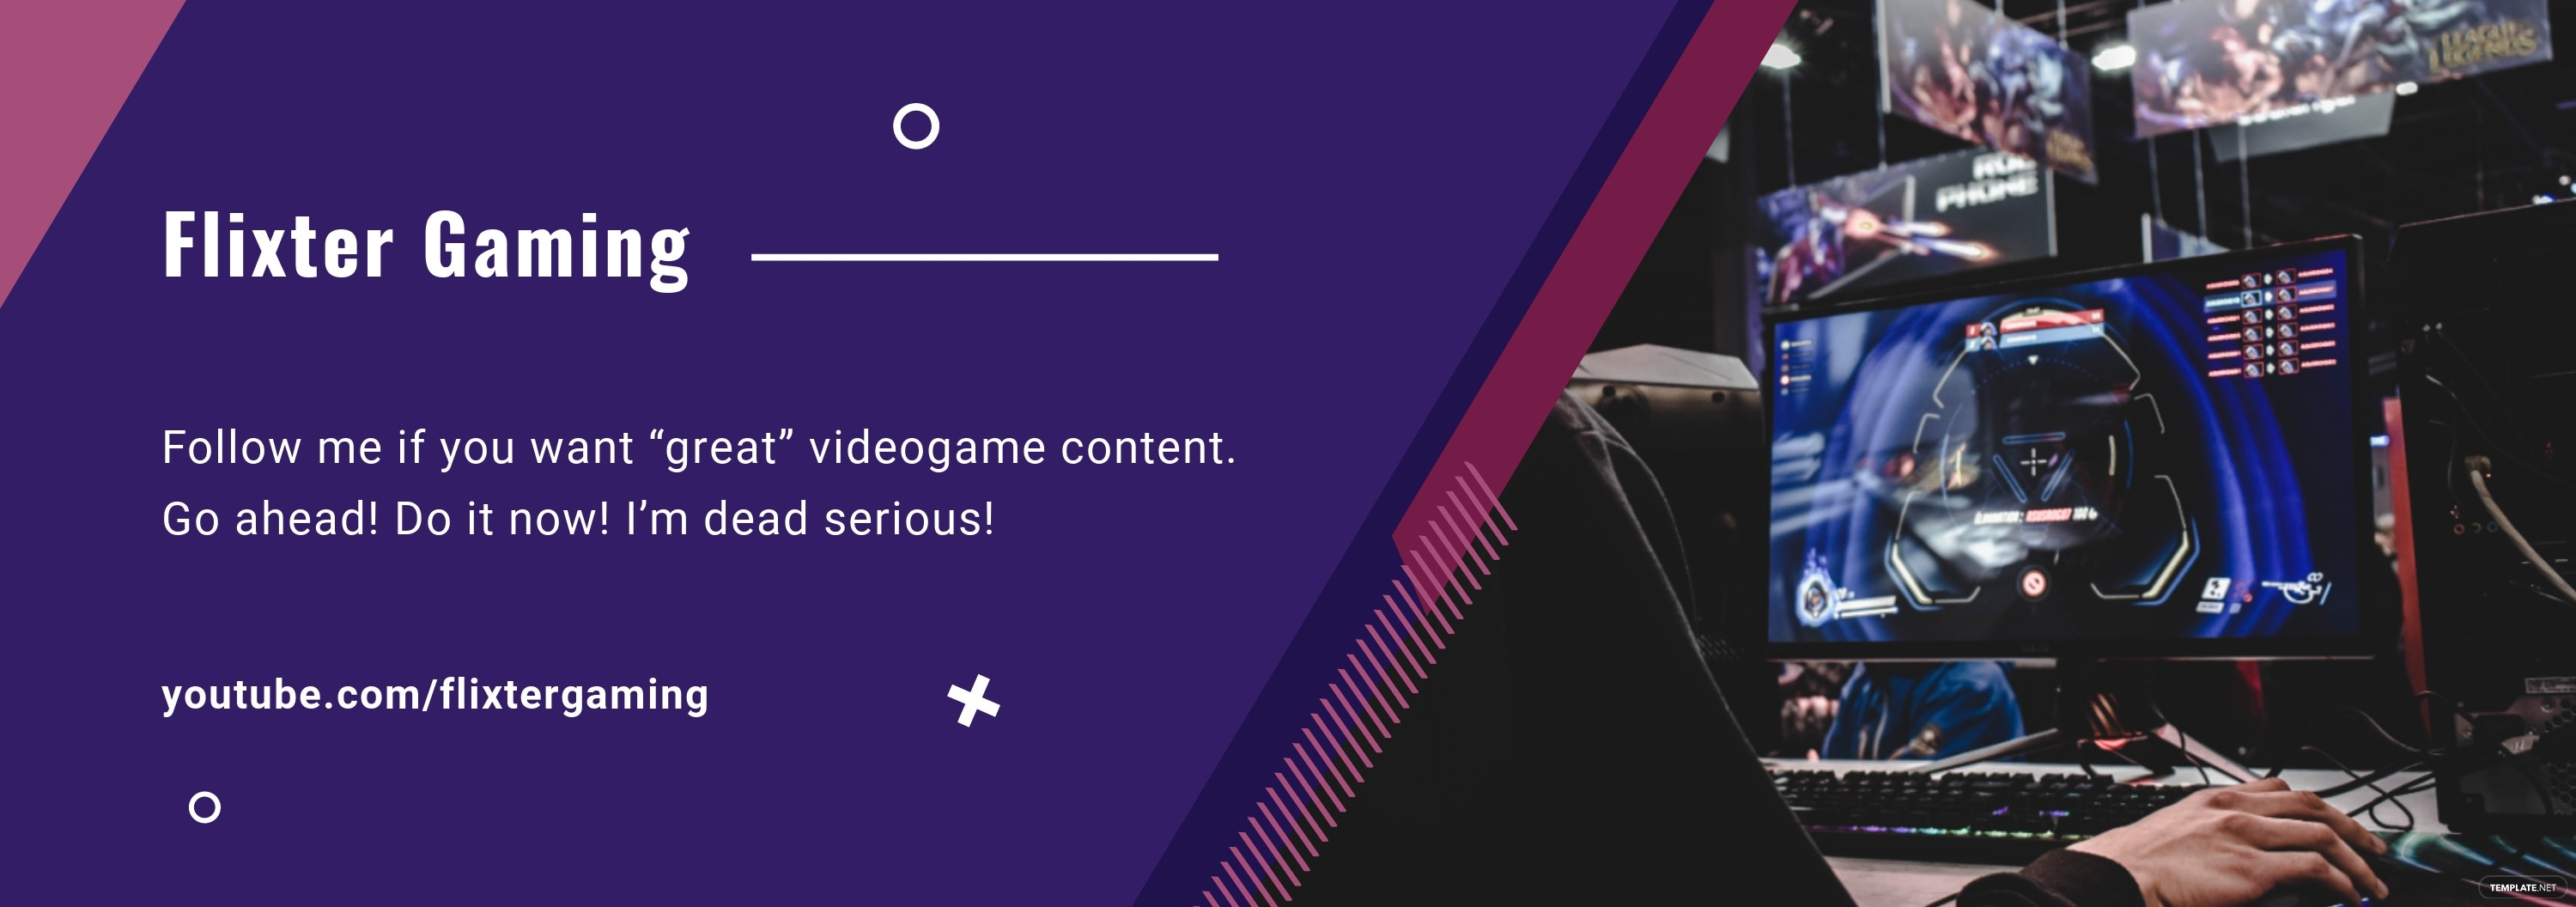 Gaming Tumblr Banner Template